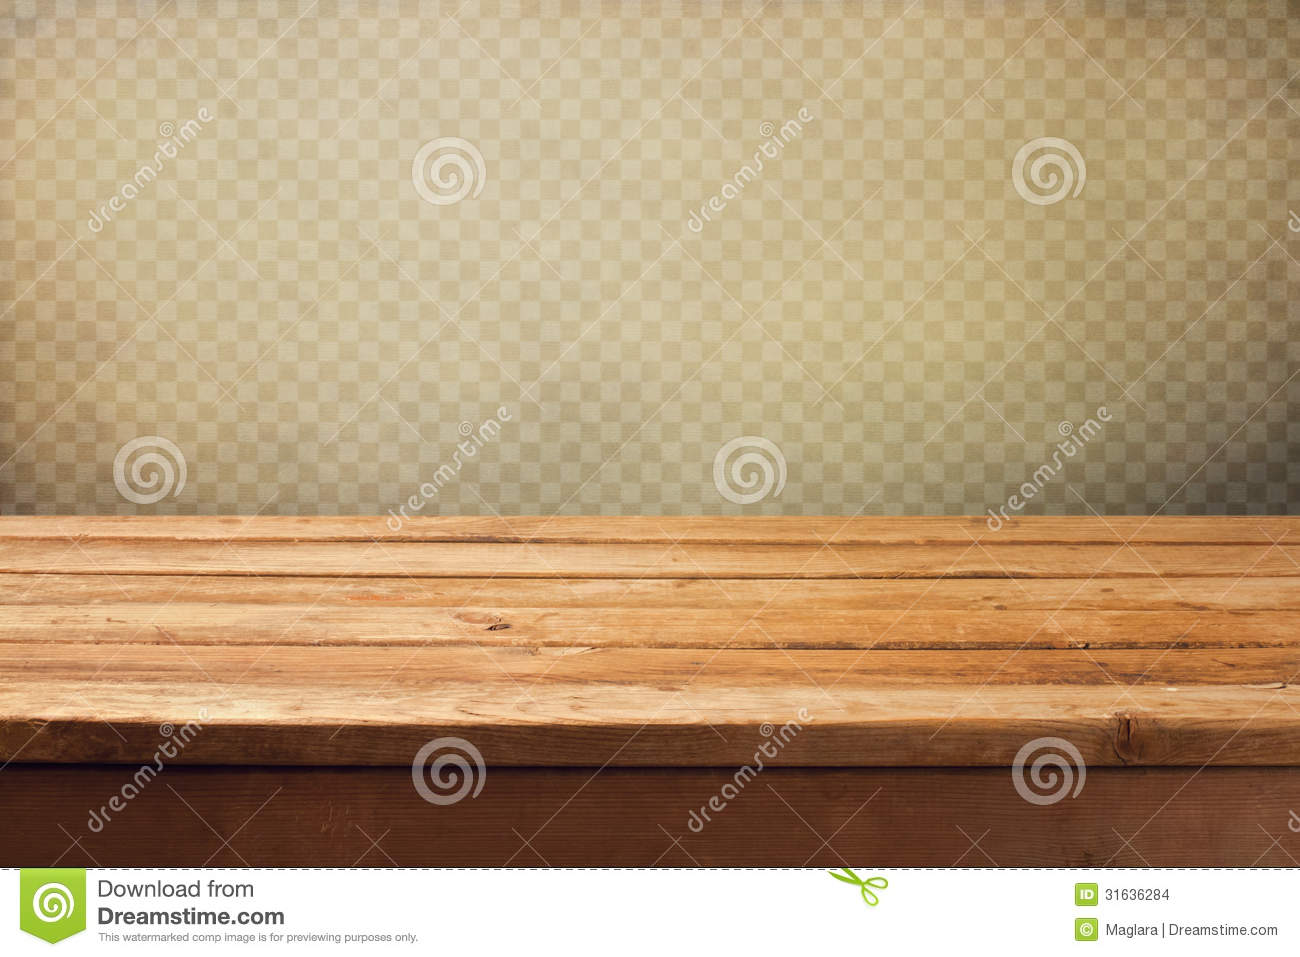 Wooden table background pattern - Royalty Free Stock Photo Download Vintage Background With Wooden Deck Table